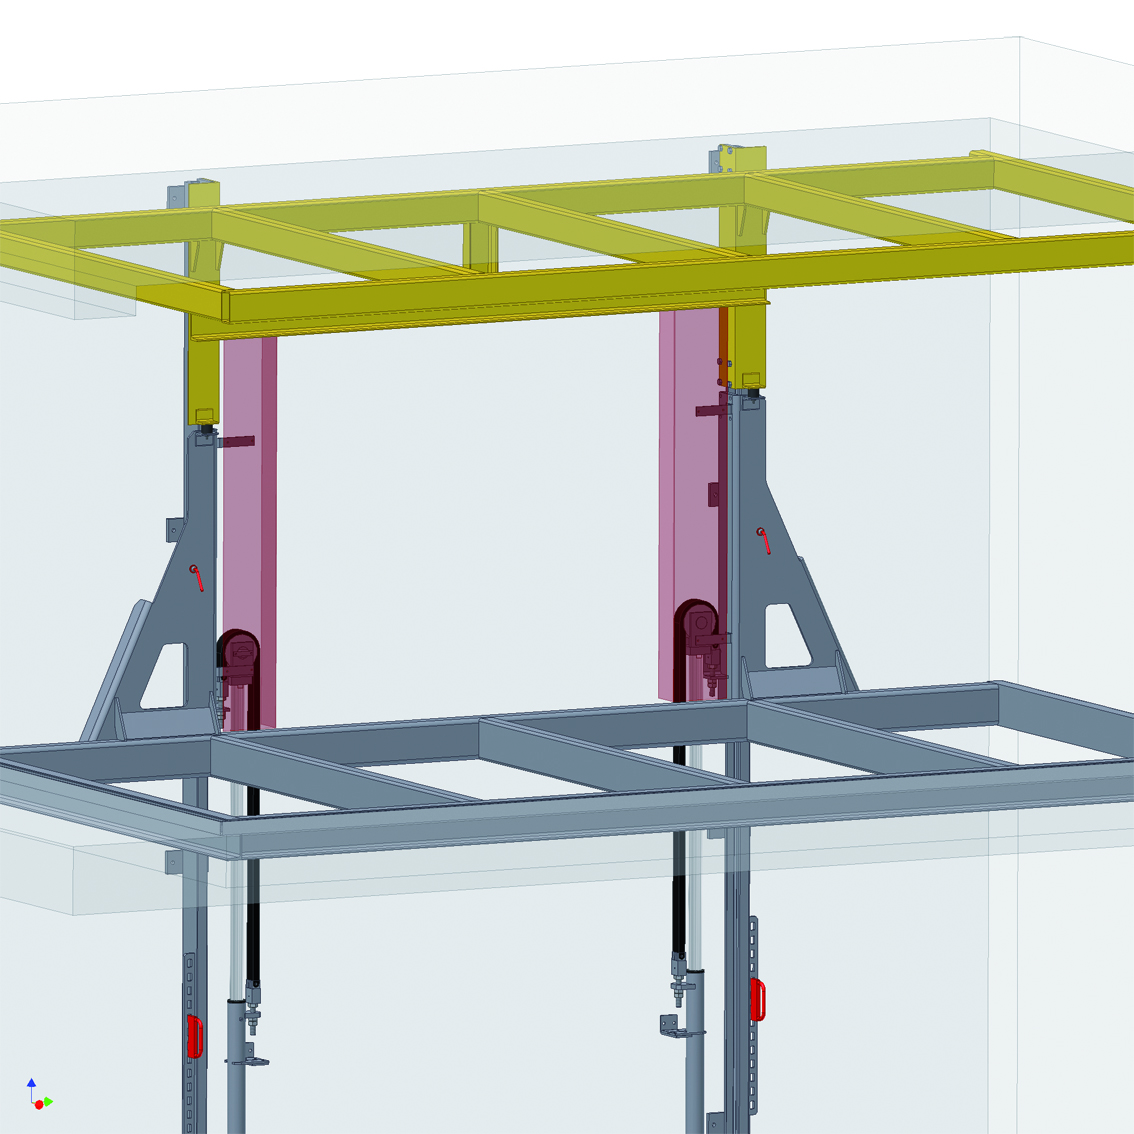 Lifting system - automotive industry